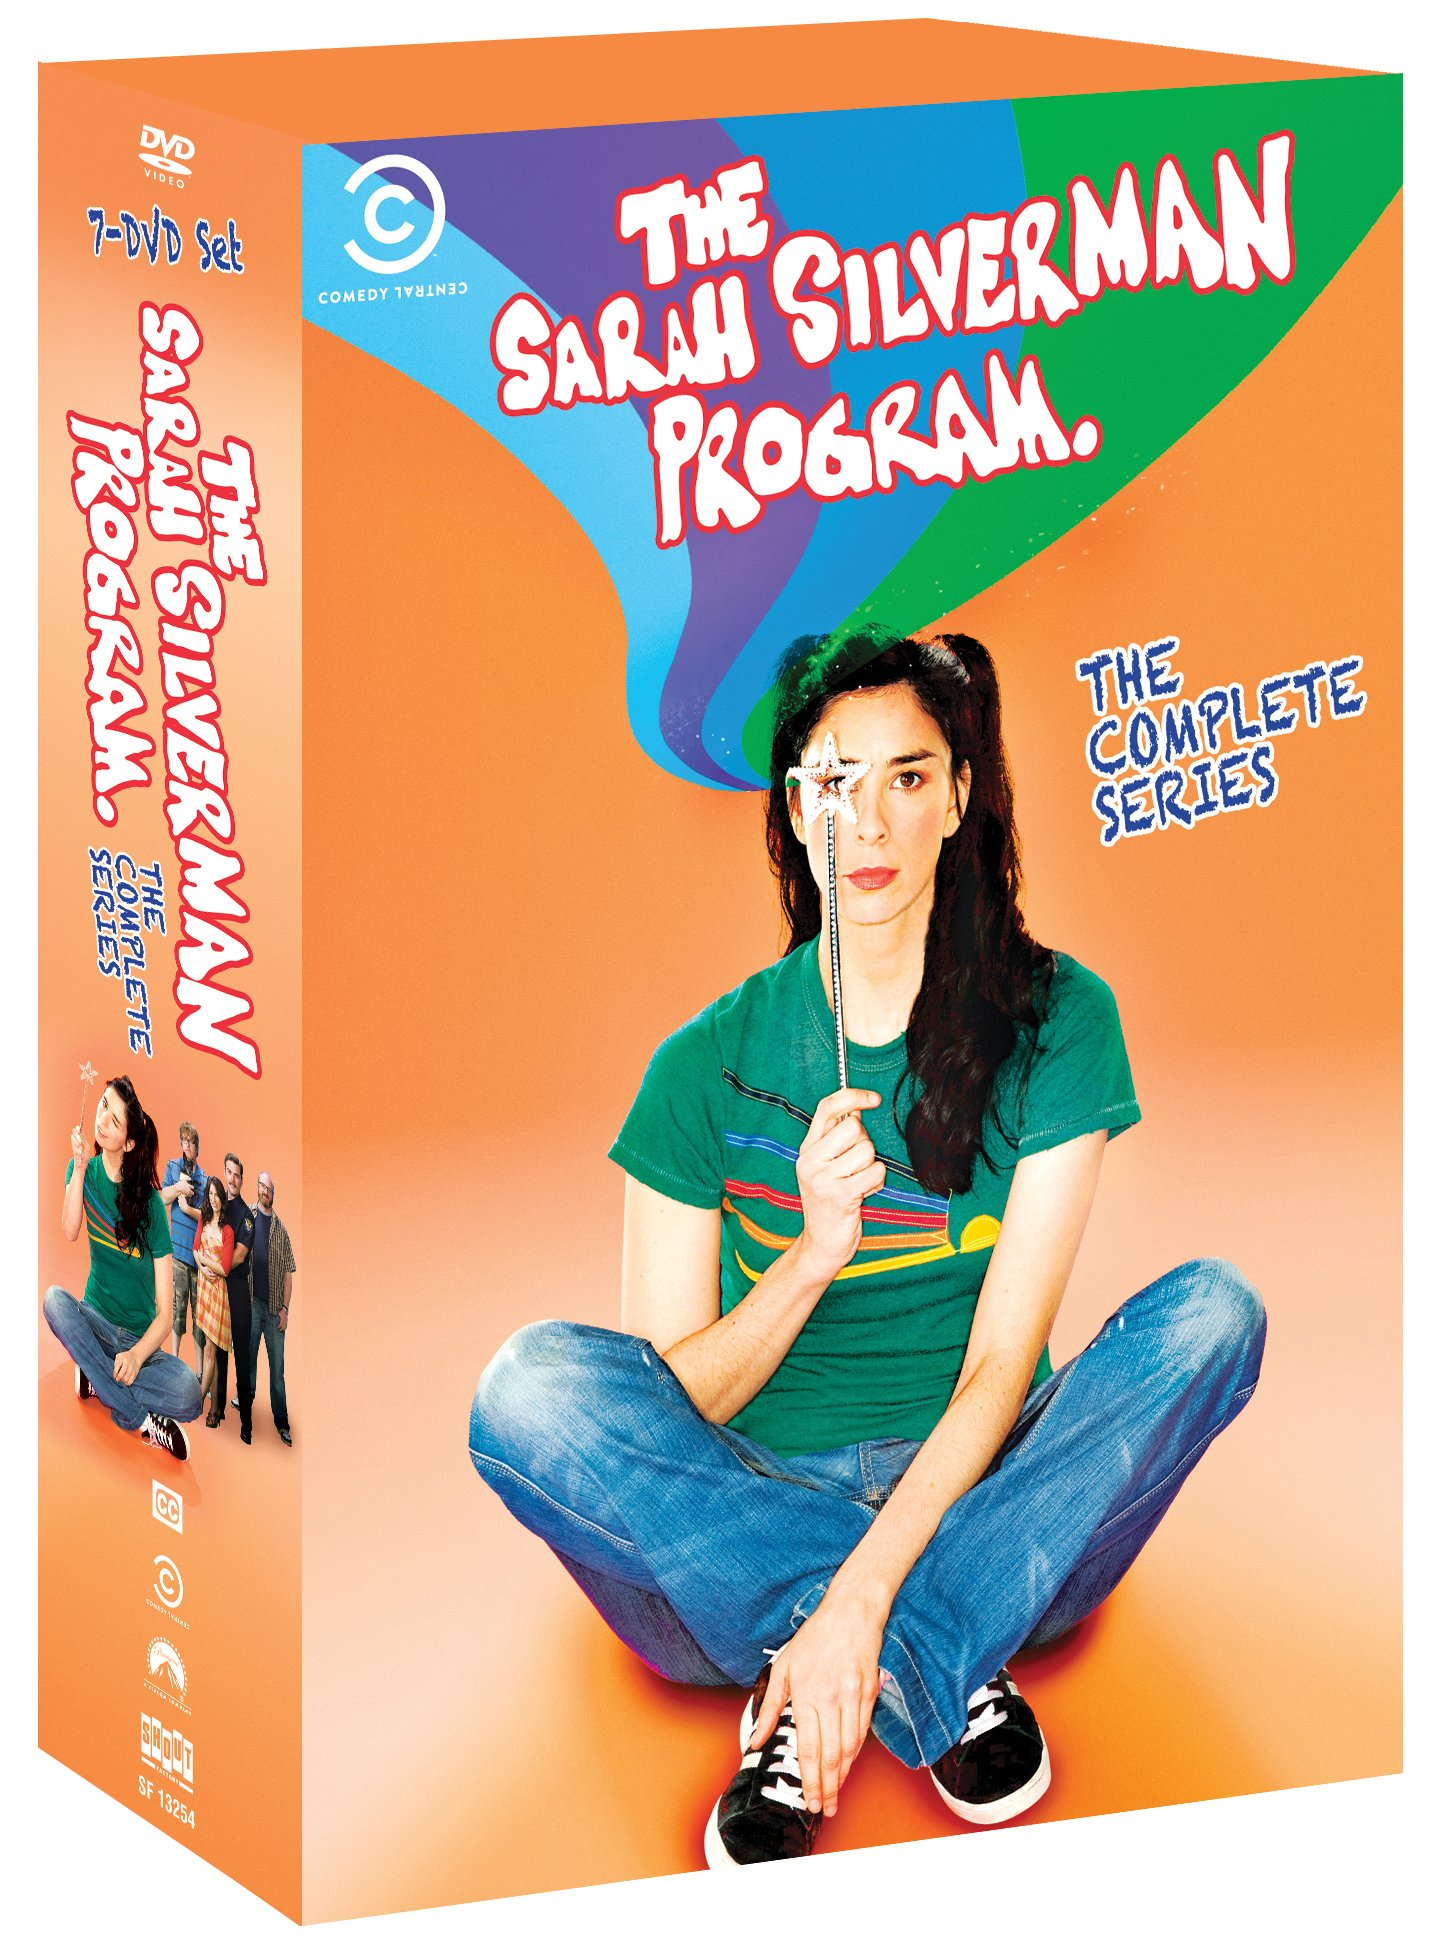 The Sarah Silverman Program: The Complete Series by Shout! Factory